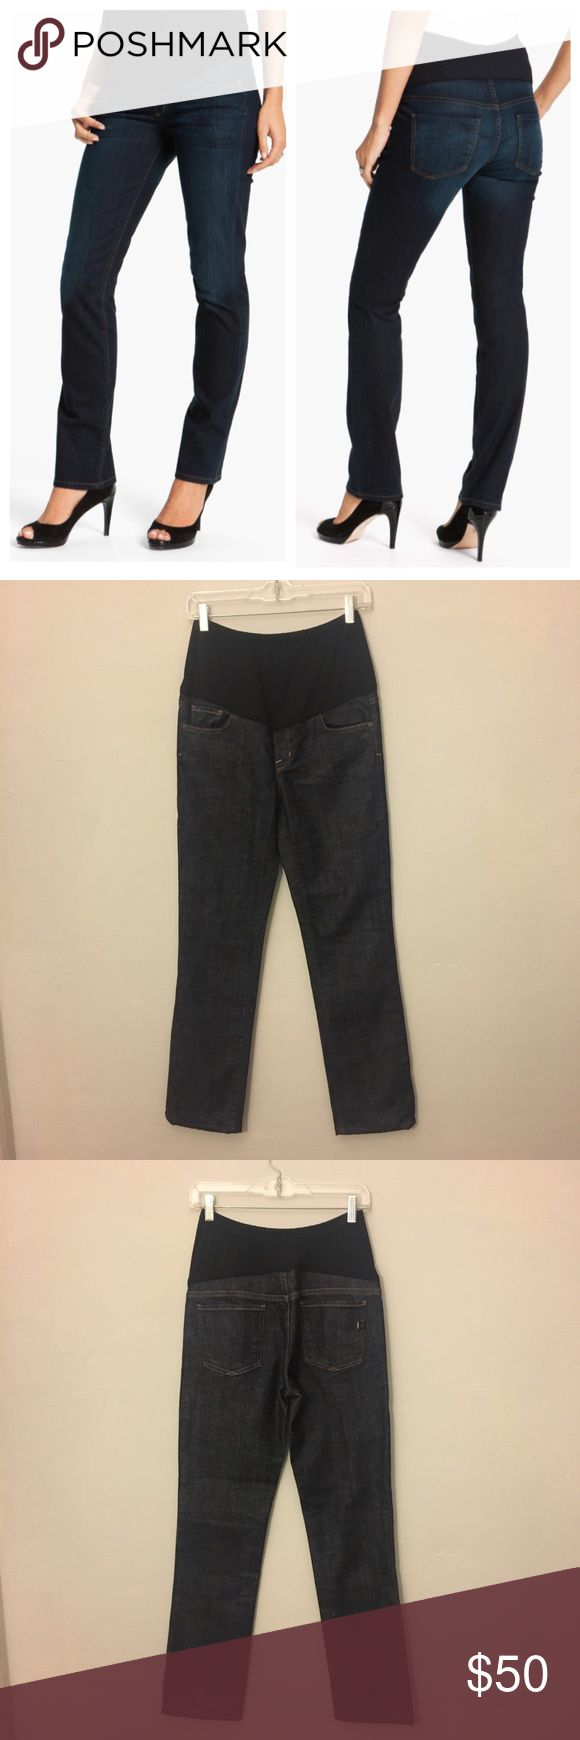 Citizens of Humanity Maternity Skinny Jeans These are a great pair of maternity jeans from Citizens of Humanity. They are a tailored skinny fit and are made out of a comfortable stretch denim which allows for movement and comfort. In a nice dark wash, these jeans are super versatile and can be worn for any occasion. They have functional front pockets and comfortable panels at the belly and back that can easily accommodate a changing figure throughout pregnancy. Dress them up for a night out…